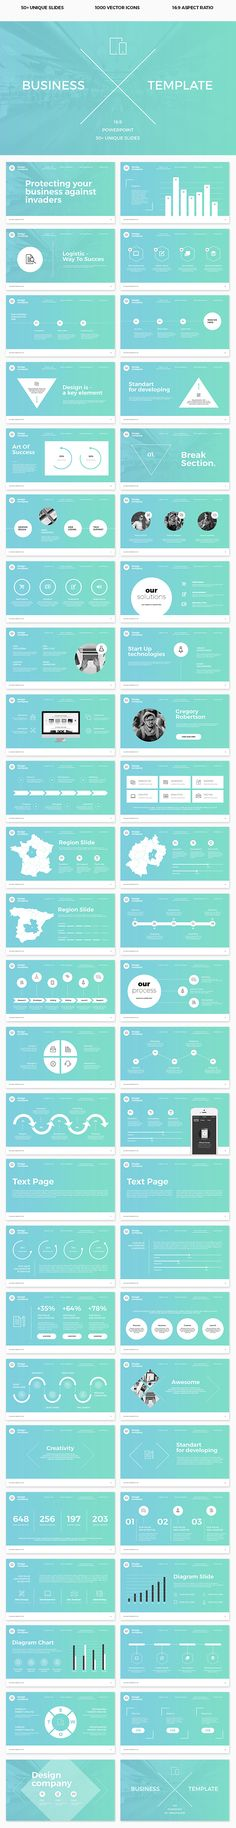 Business Powerpoint Template - Business PowerPoint Templates Download here: https://graphicriver.net/item/business-powerpoint-template/19796287?ref=classicdesignp